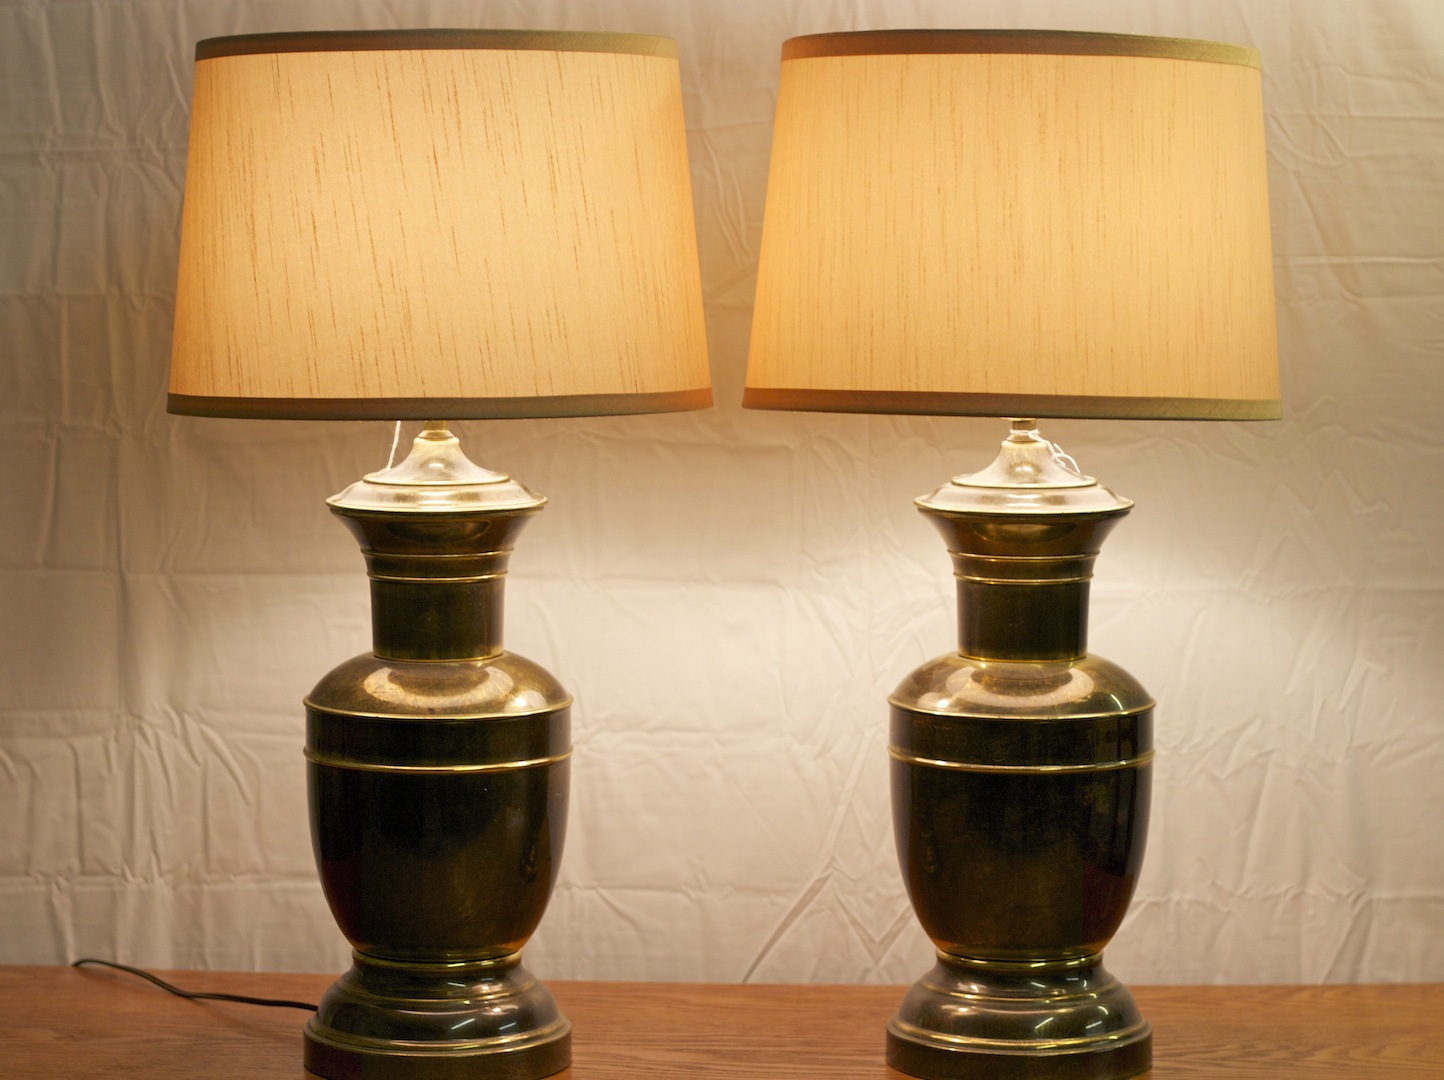 25 Vintage Table Lamps For A Retro Home Decor Warisan